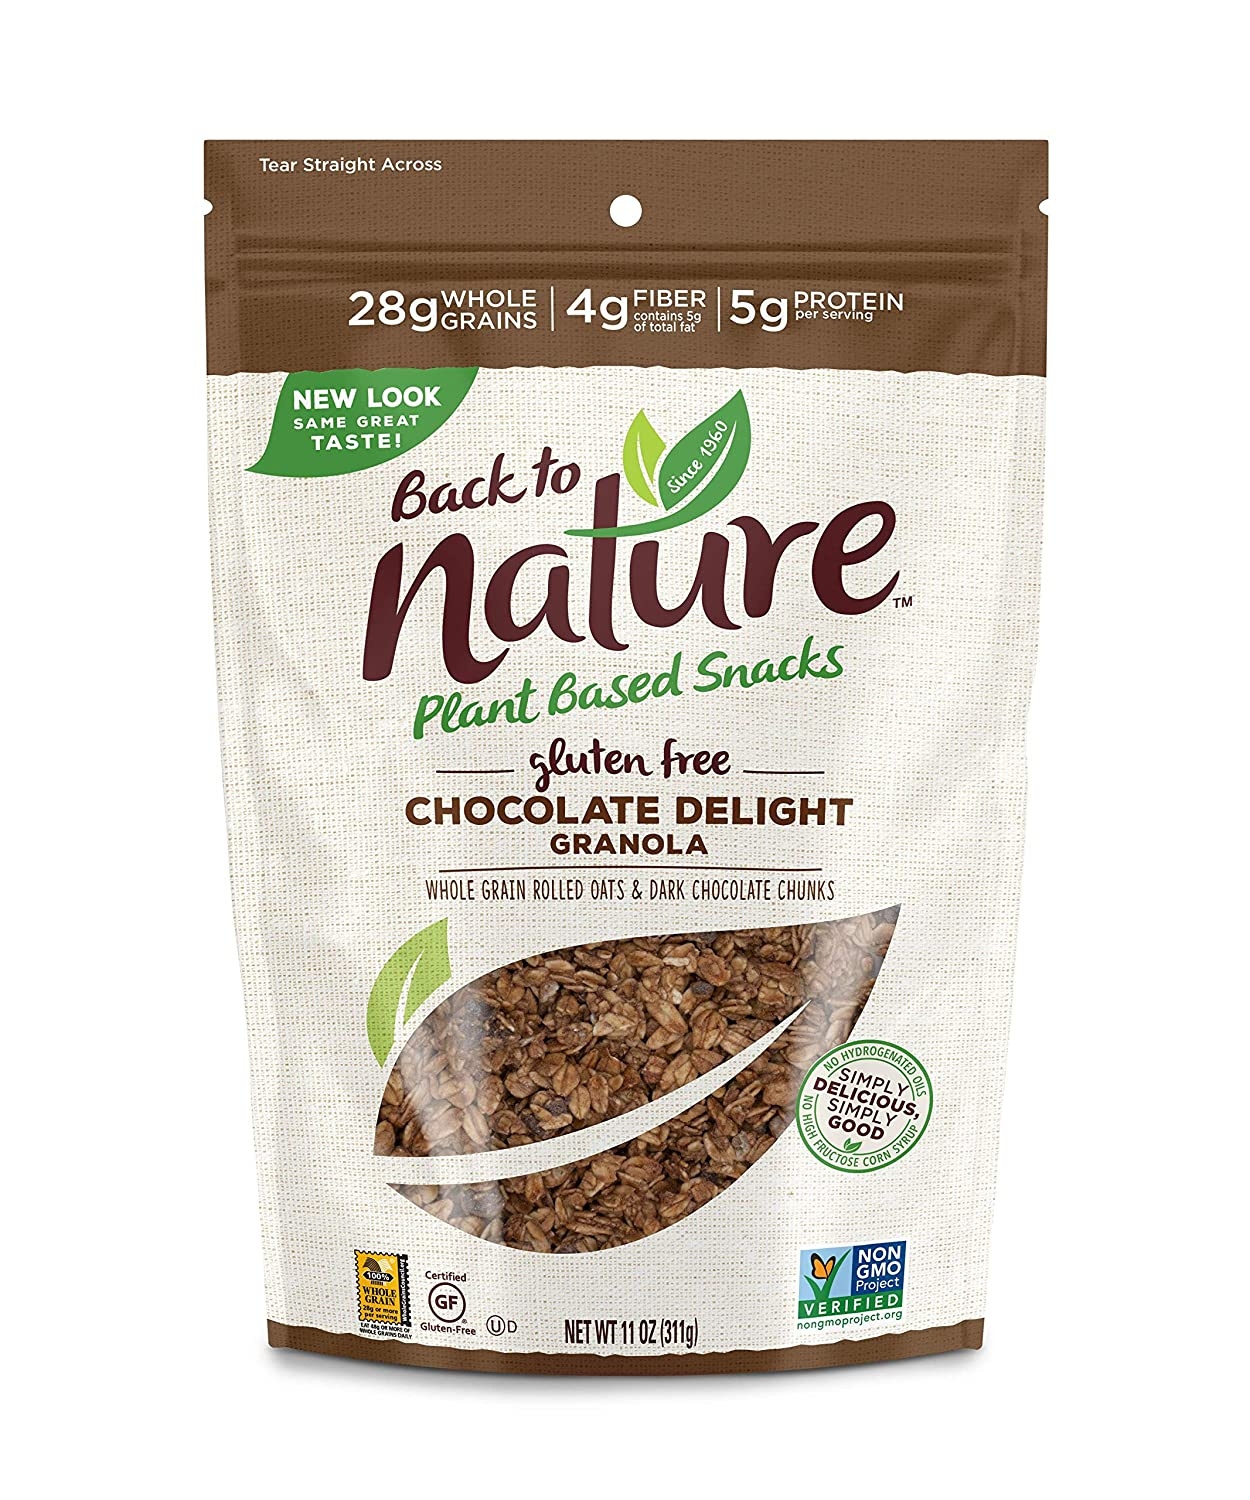 Back to Nature Gluten Free Granola, Non-GMO Chocolate Delight, 11 Ounce (Pack of 6) (Packaging May Vary)